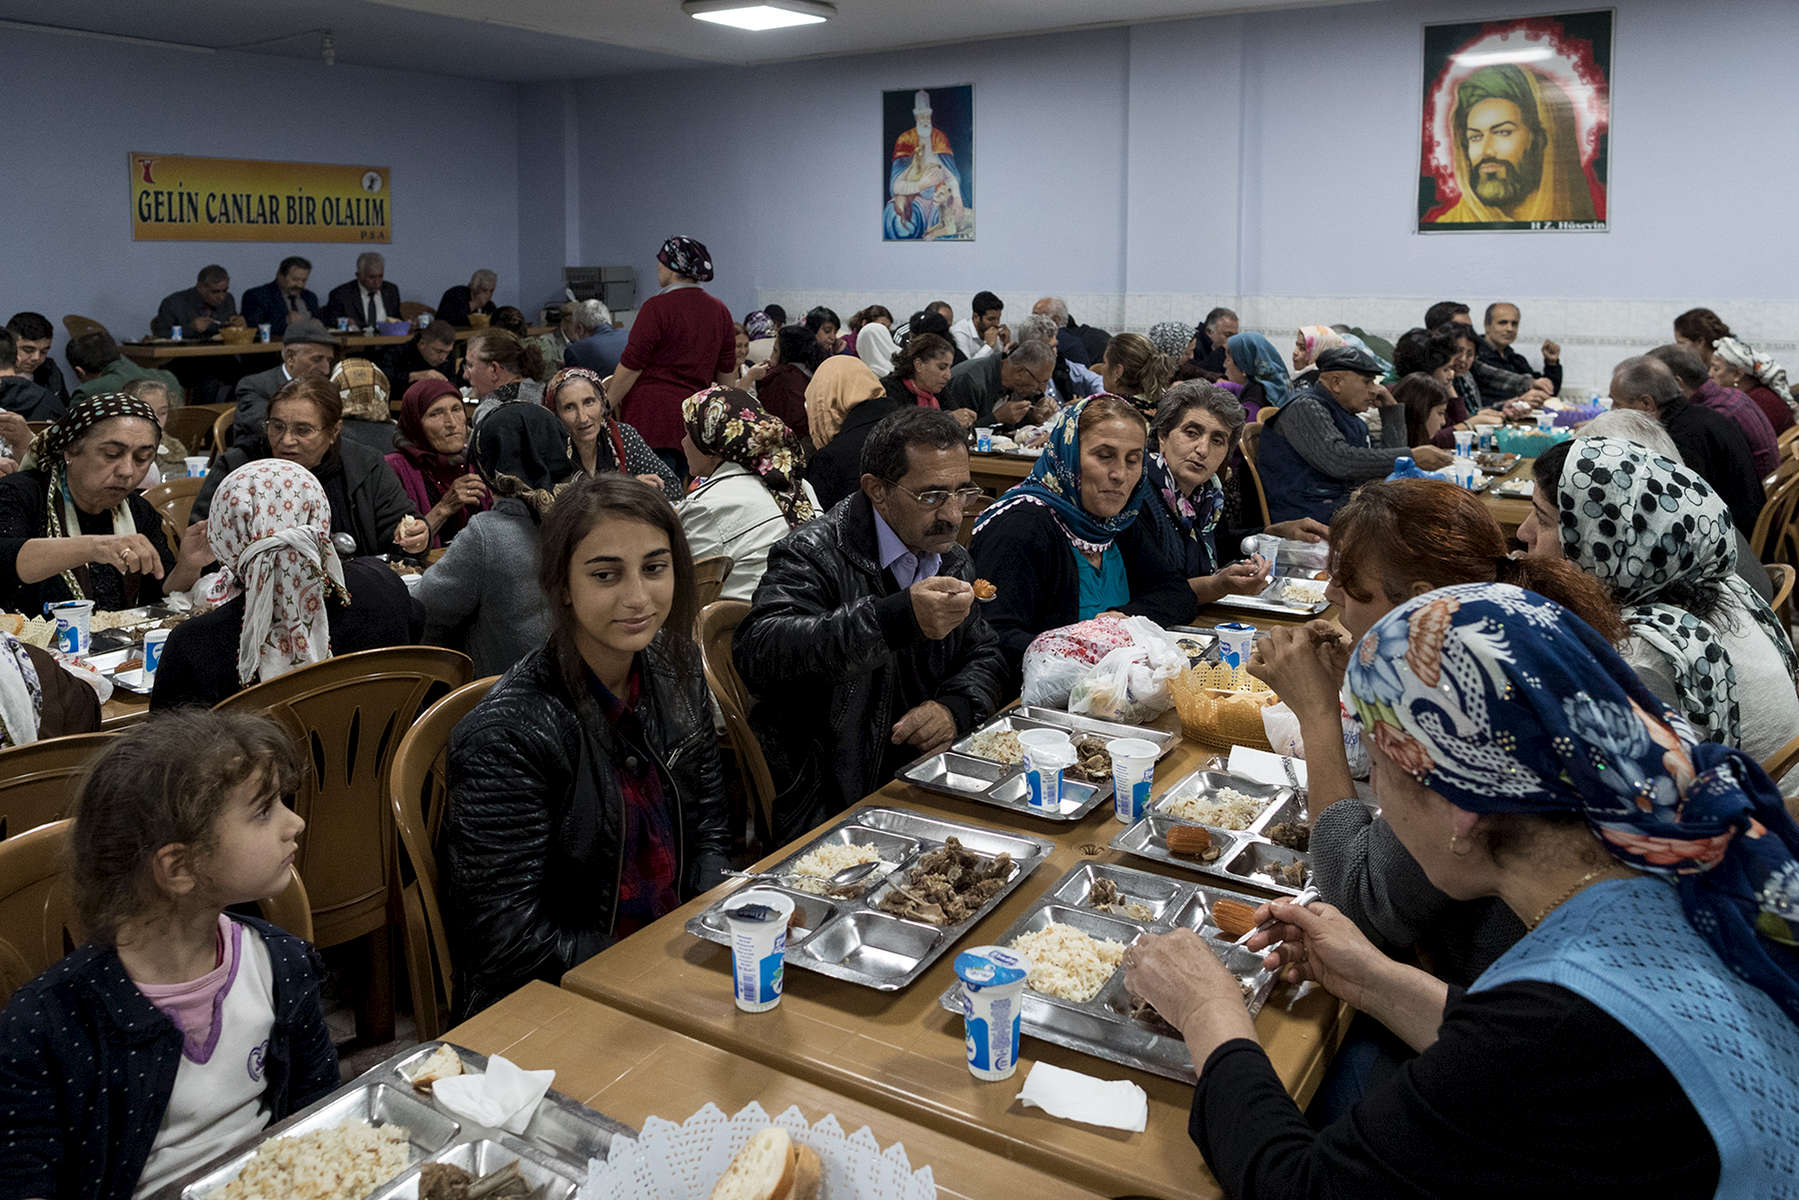 Turkey, 2017 - Alevis share a meal after a {quote}cem{quote}. On the wall, the figure of Ali, son-in-law of Mahommet and founder of the sect. Branch of Shia Islam and Sufism, officially ignored by the Turkish authorities. They have no juridical recognition in Turkey.